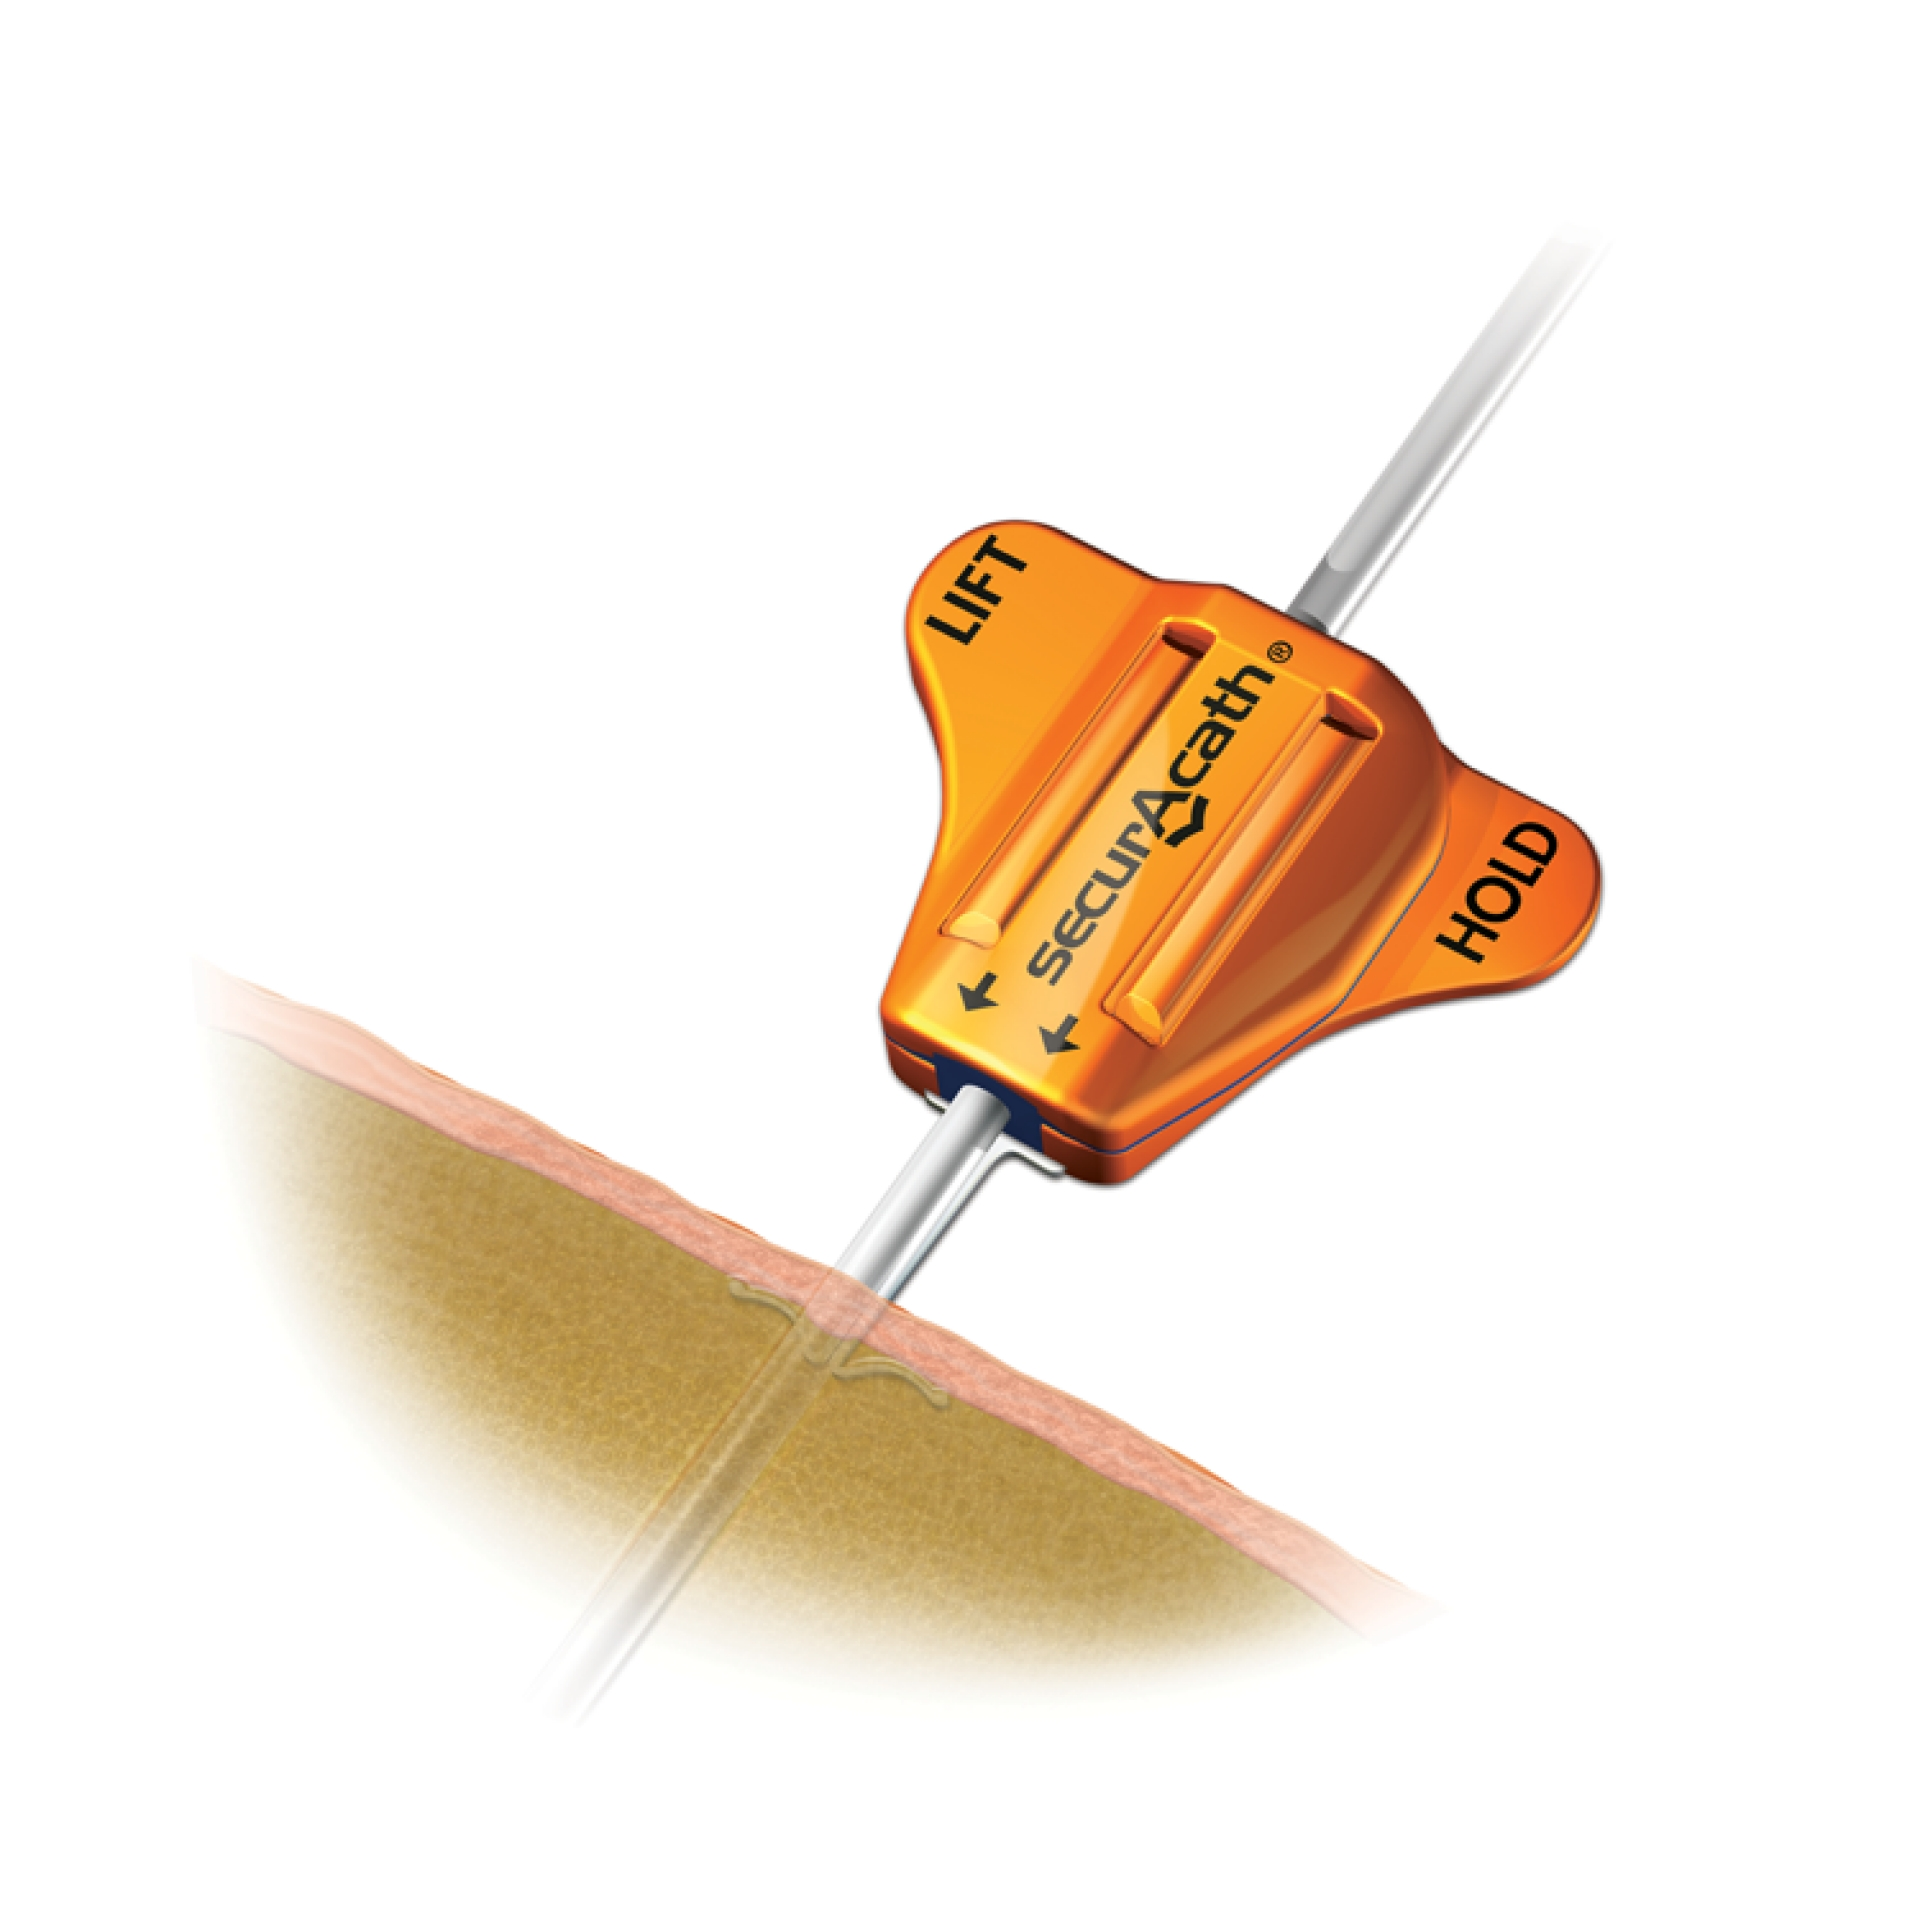 Subcutaneous Engineered Stabilization Device SecurAcath®